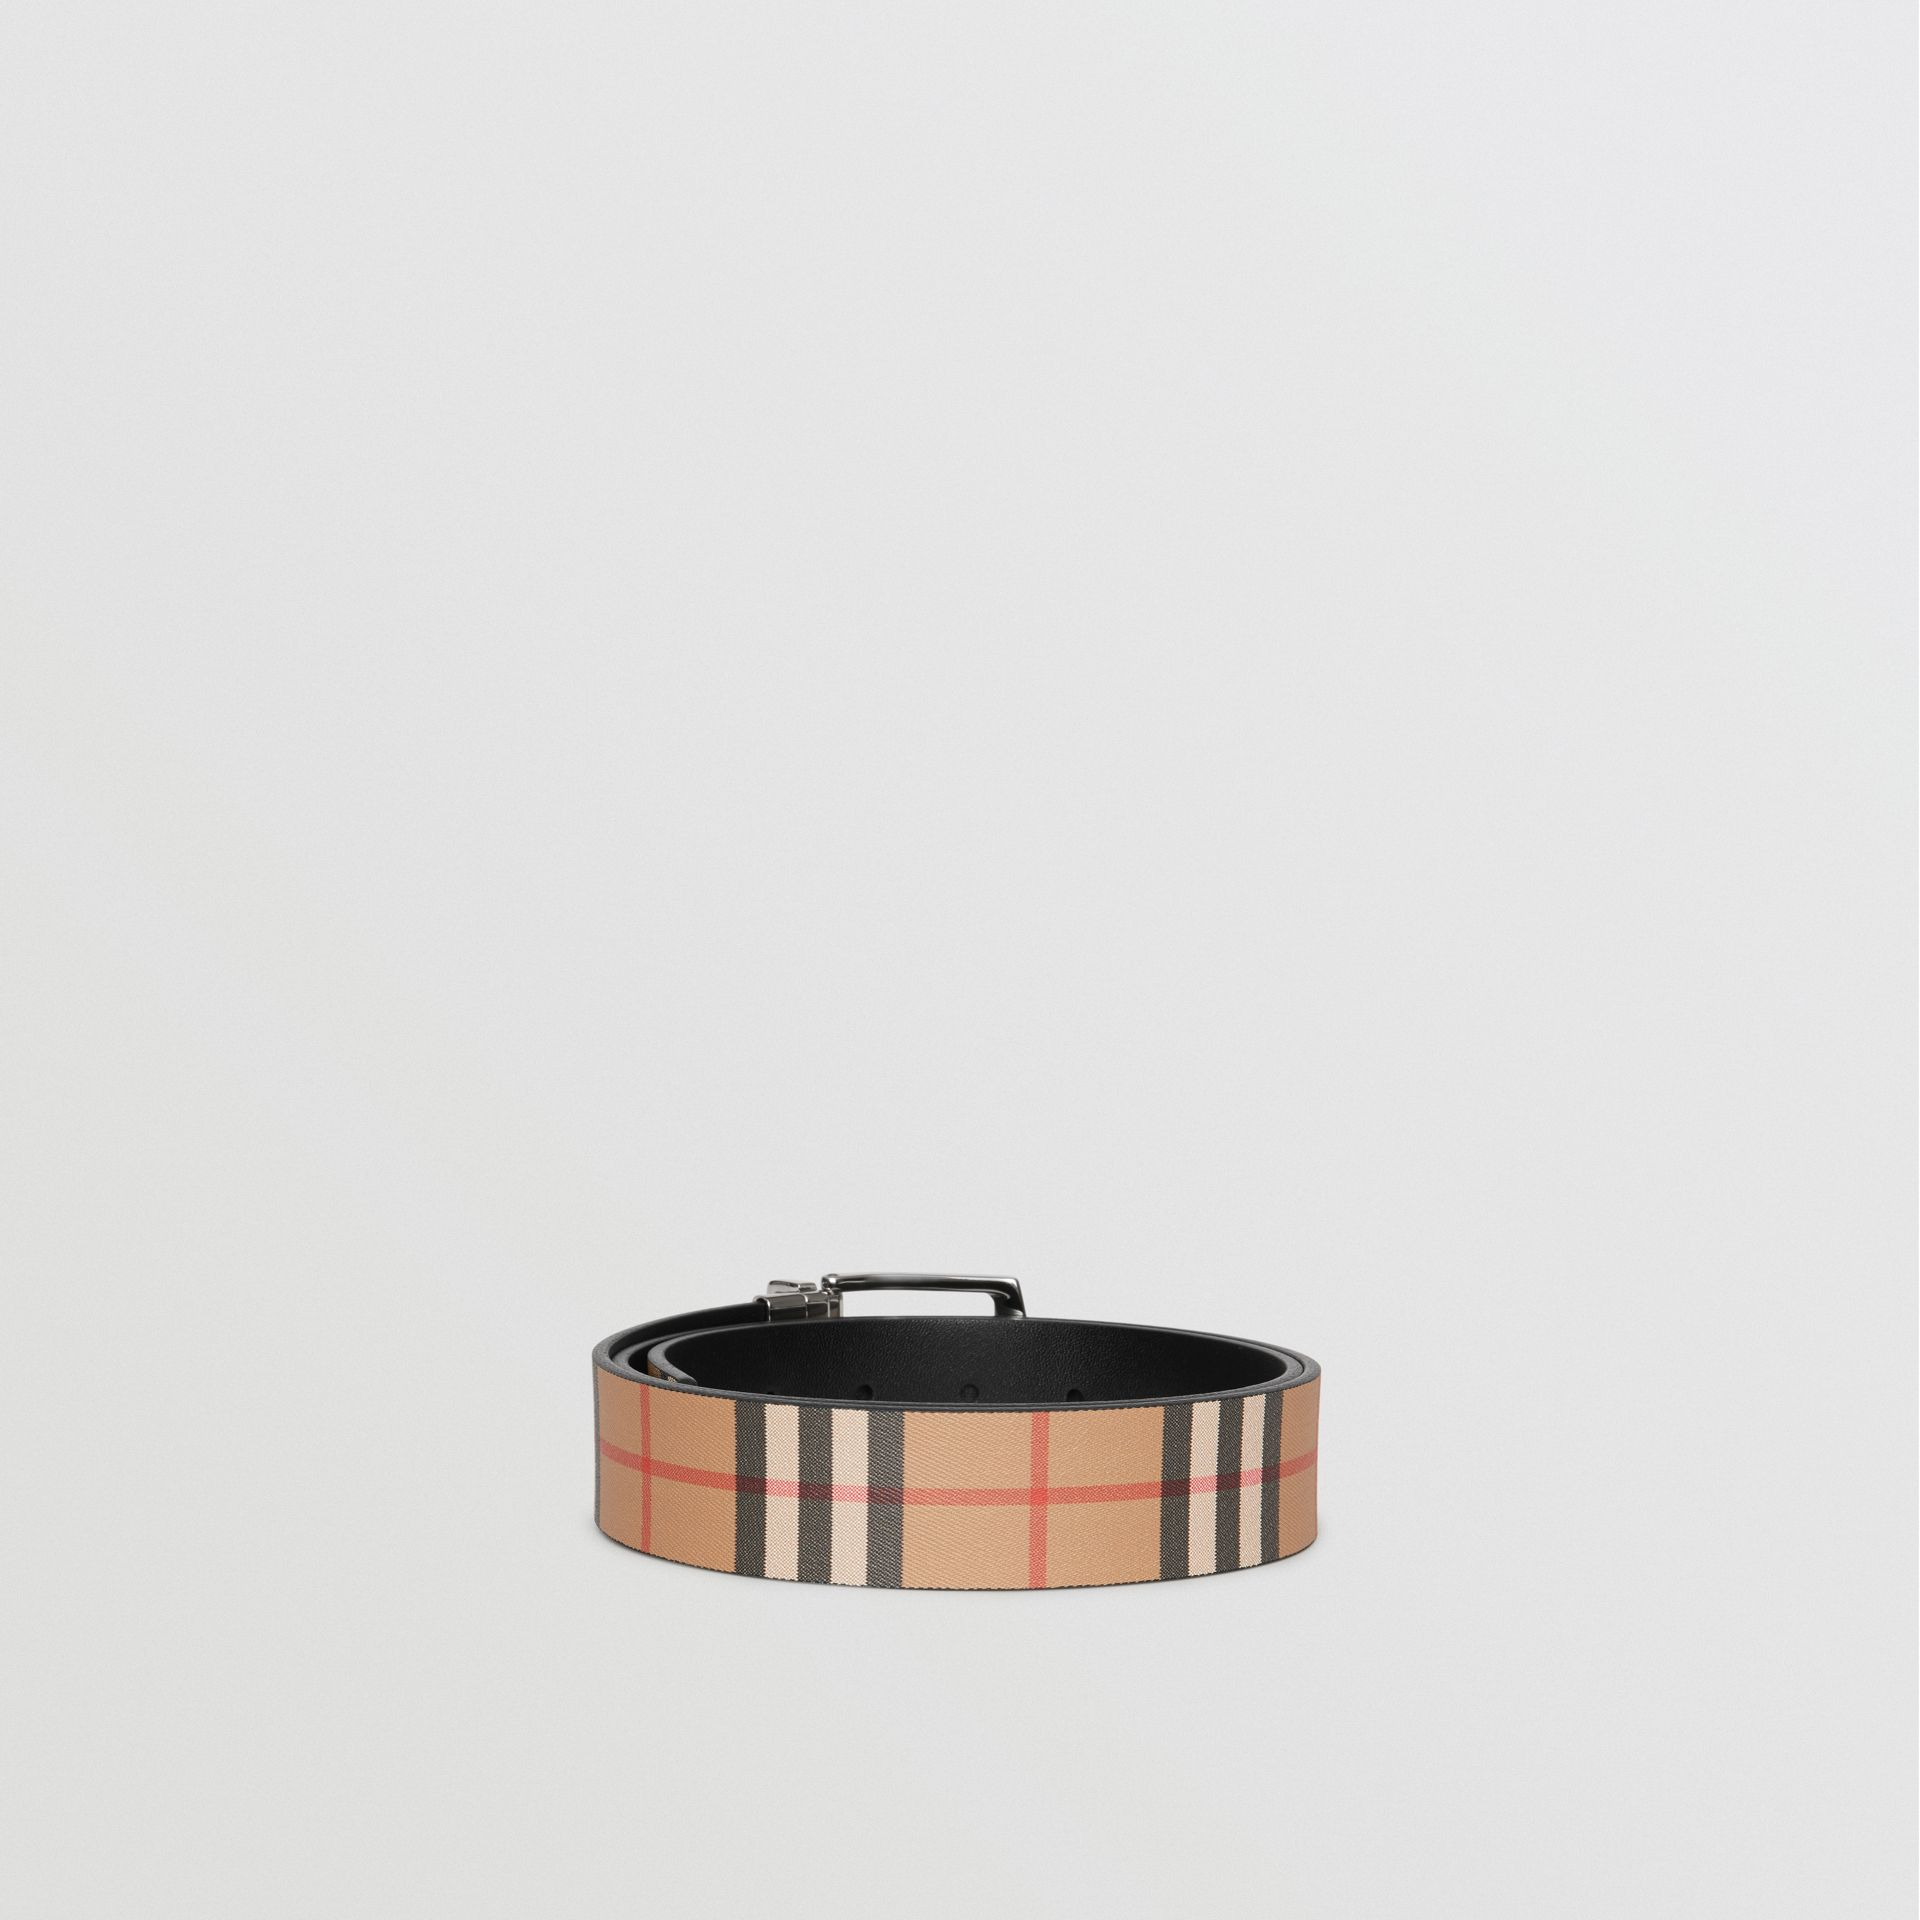 Reversible Vintage Check Leather Belt in Black - Men | Burberry - gallery image 5